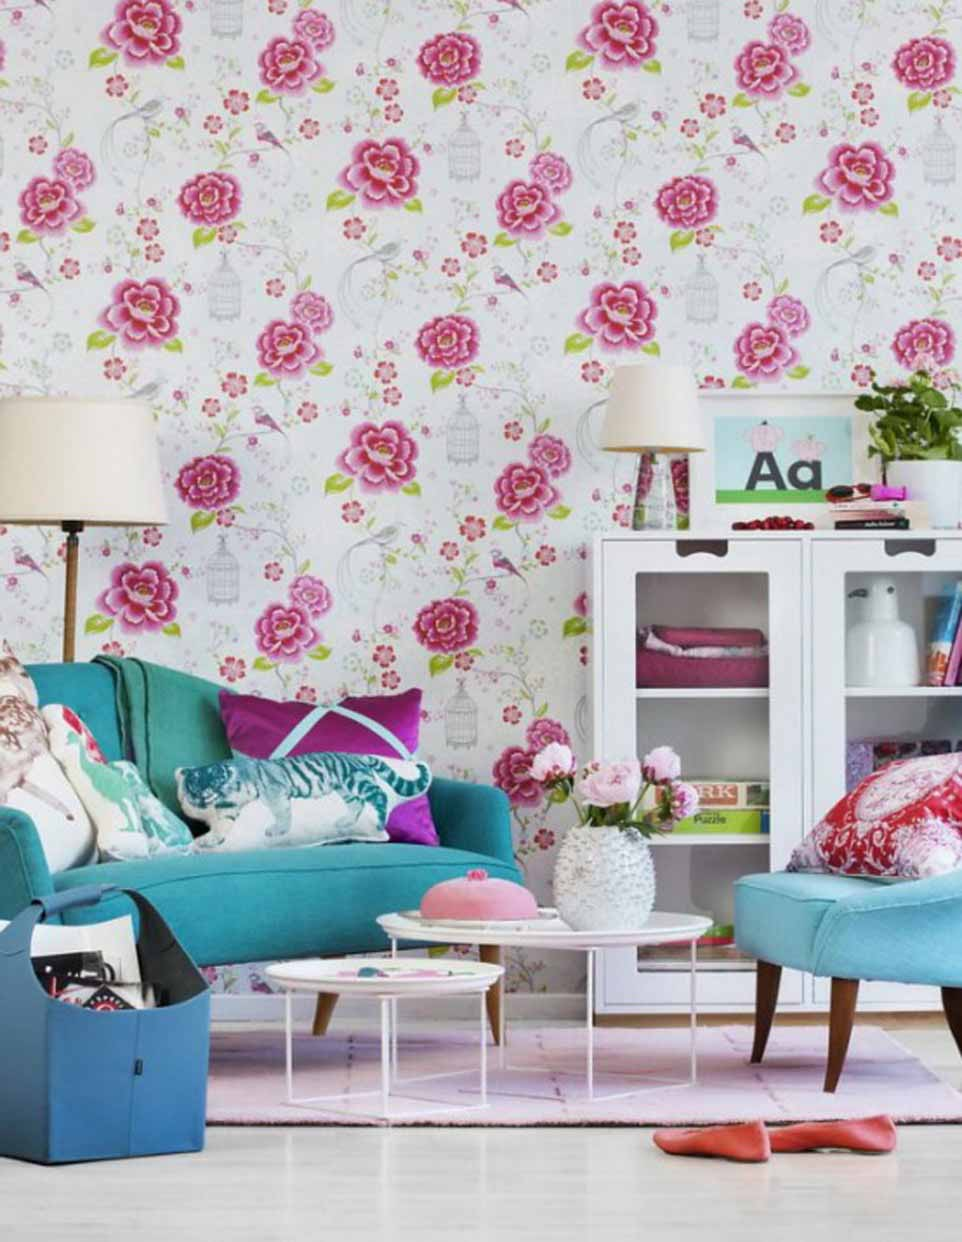 Model Wallpaper Kamar 76 Model Wallpaper Dinding Rumah Dan Kamar Terbaru 2018 Model